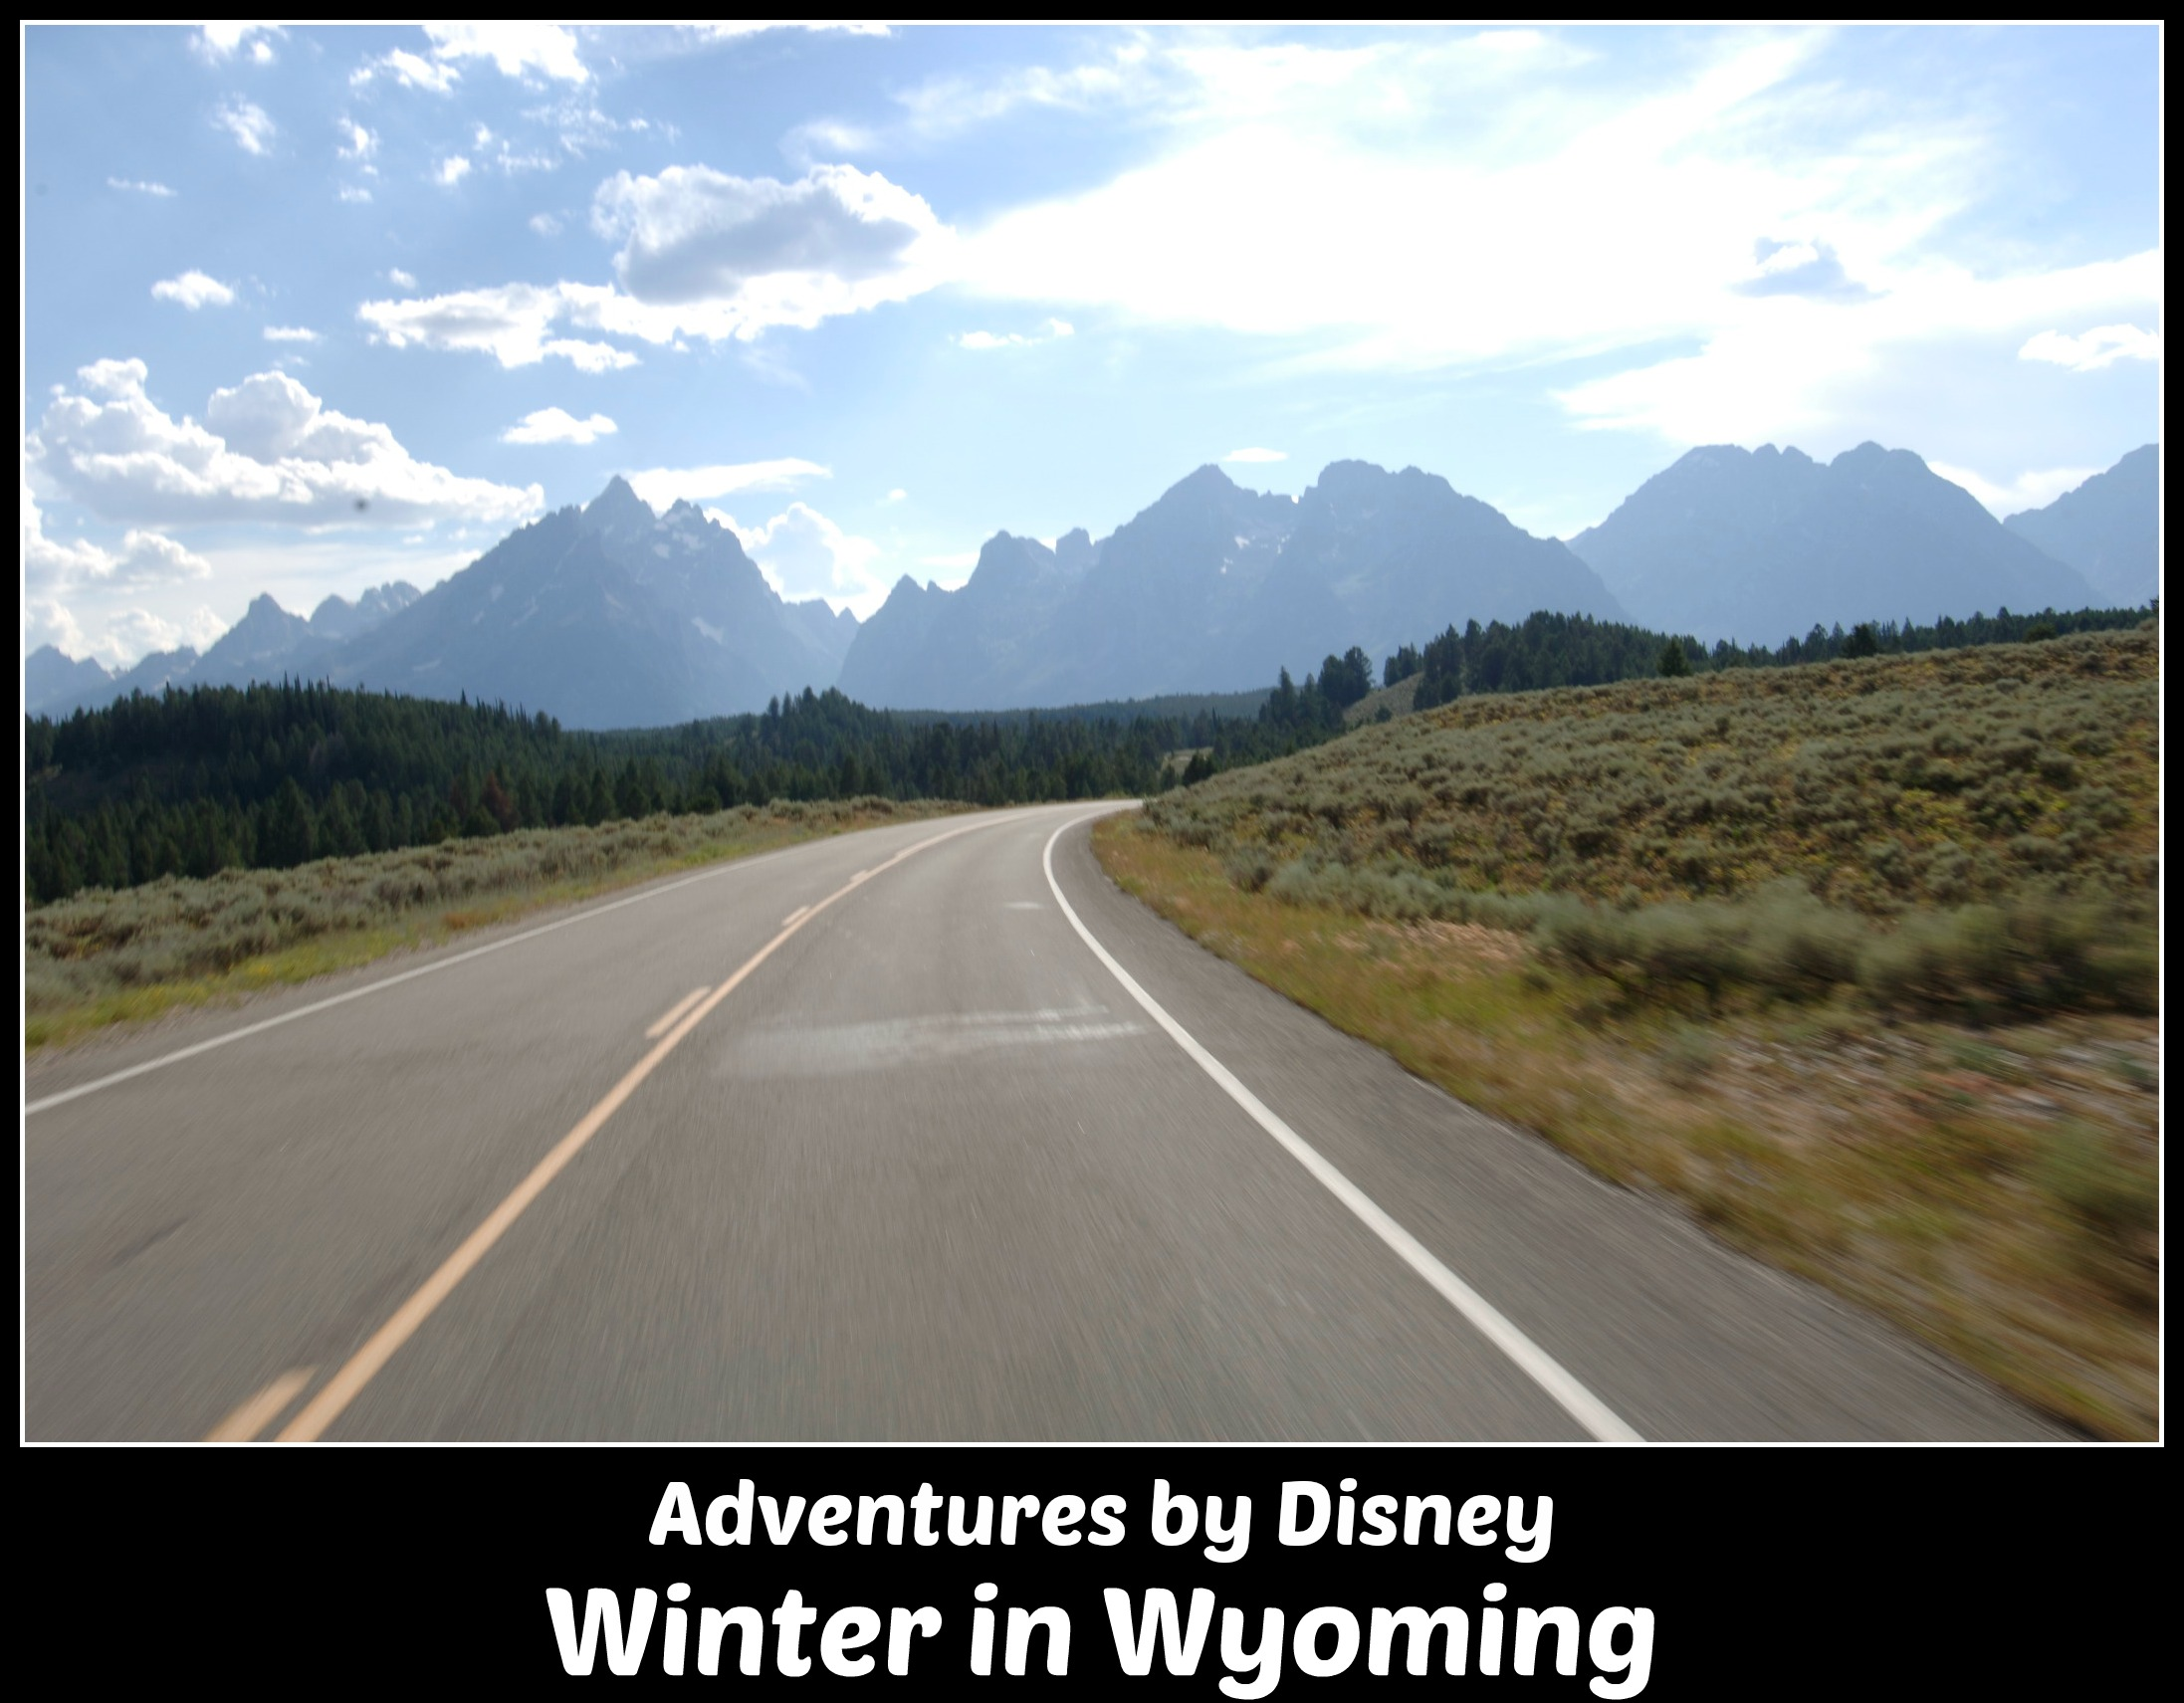 Adventures by Disney Winter in Wyoming guided tour